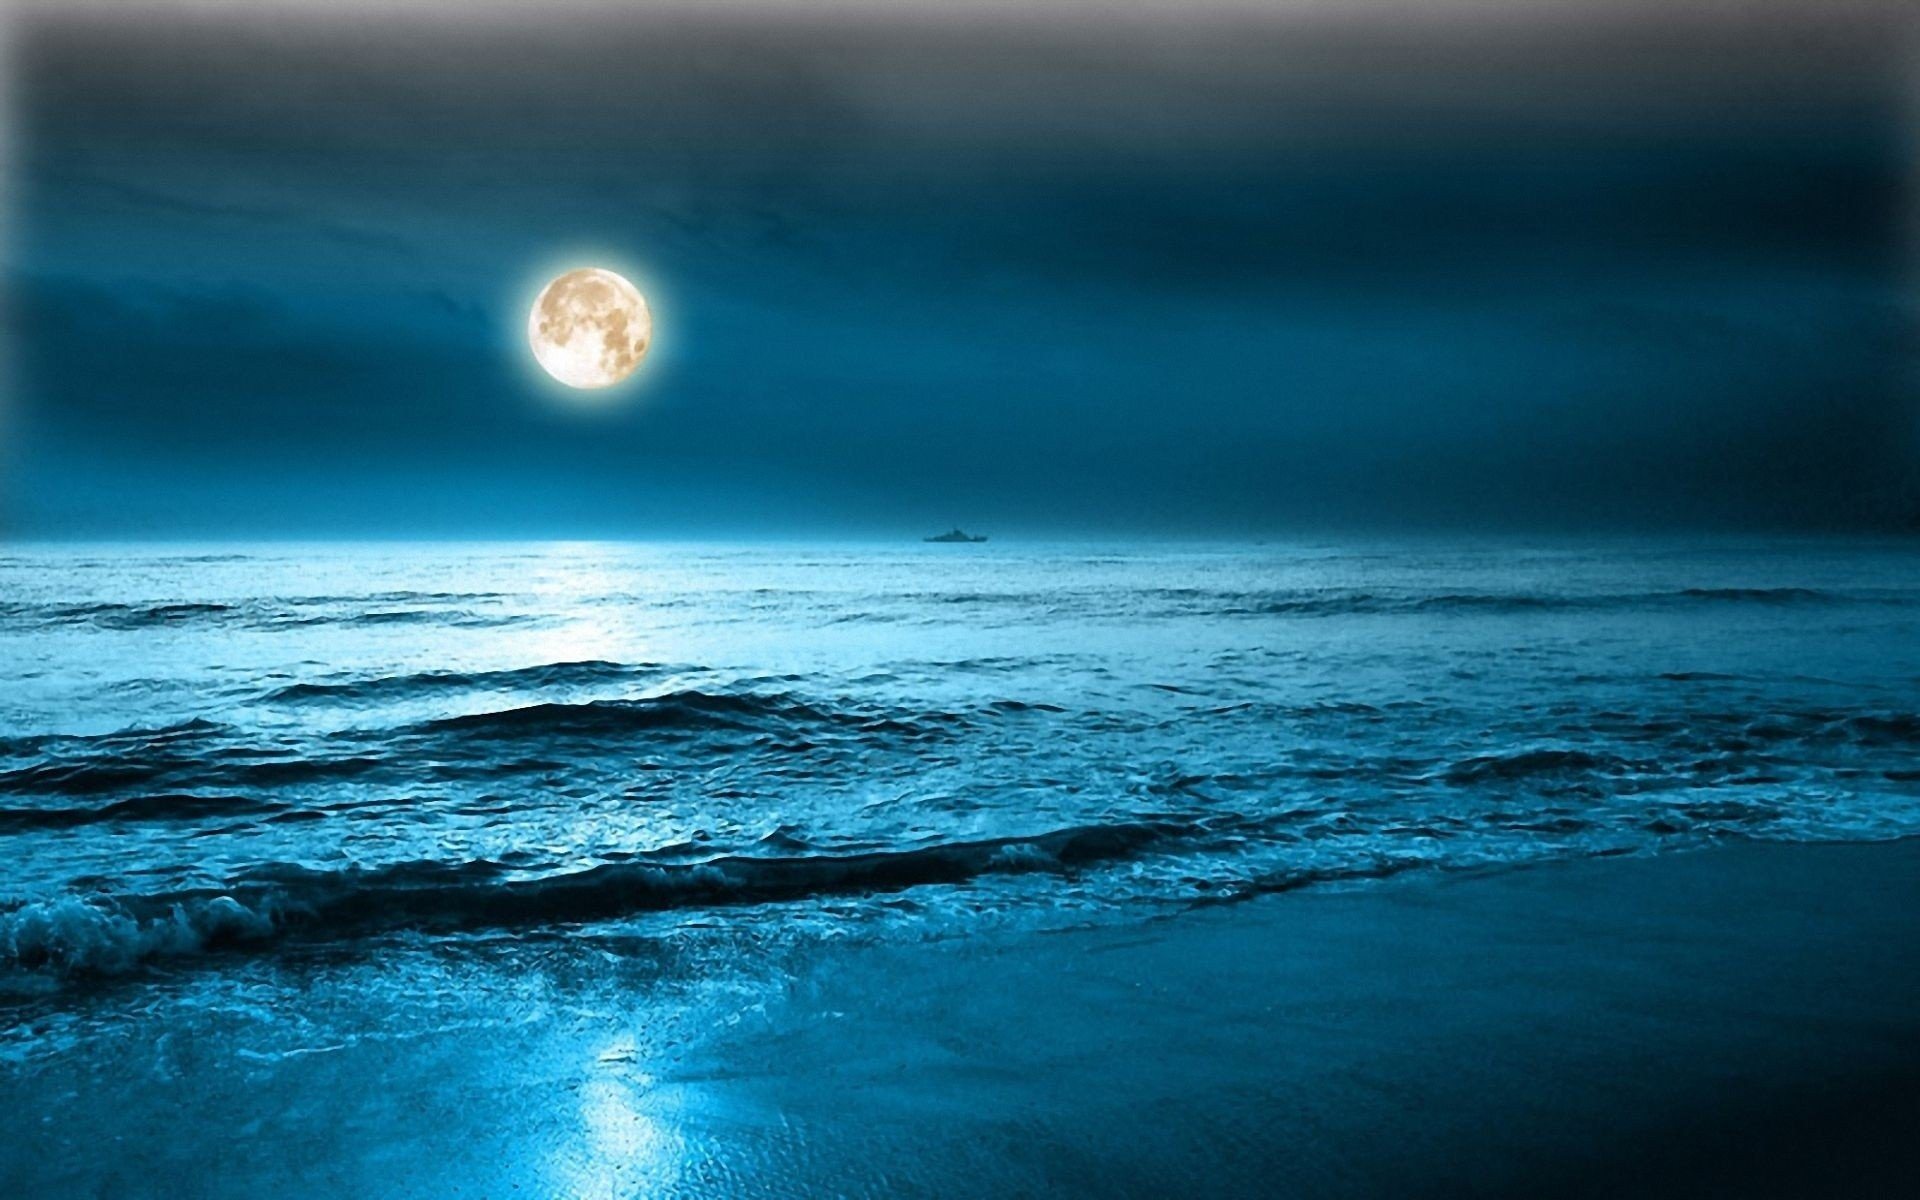 Descargar Libro Noc Full Moon Over Ocean Hd Wallpaper Background Image